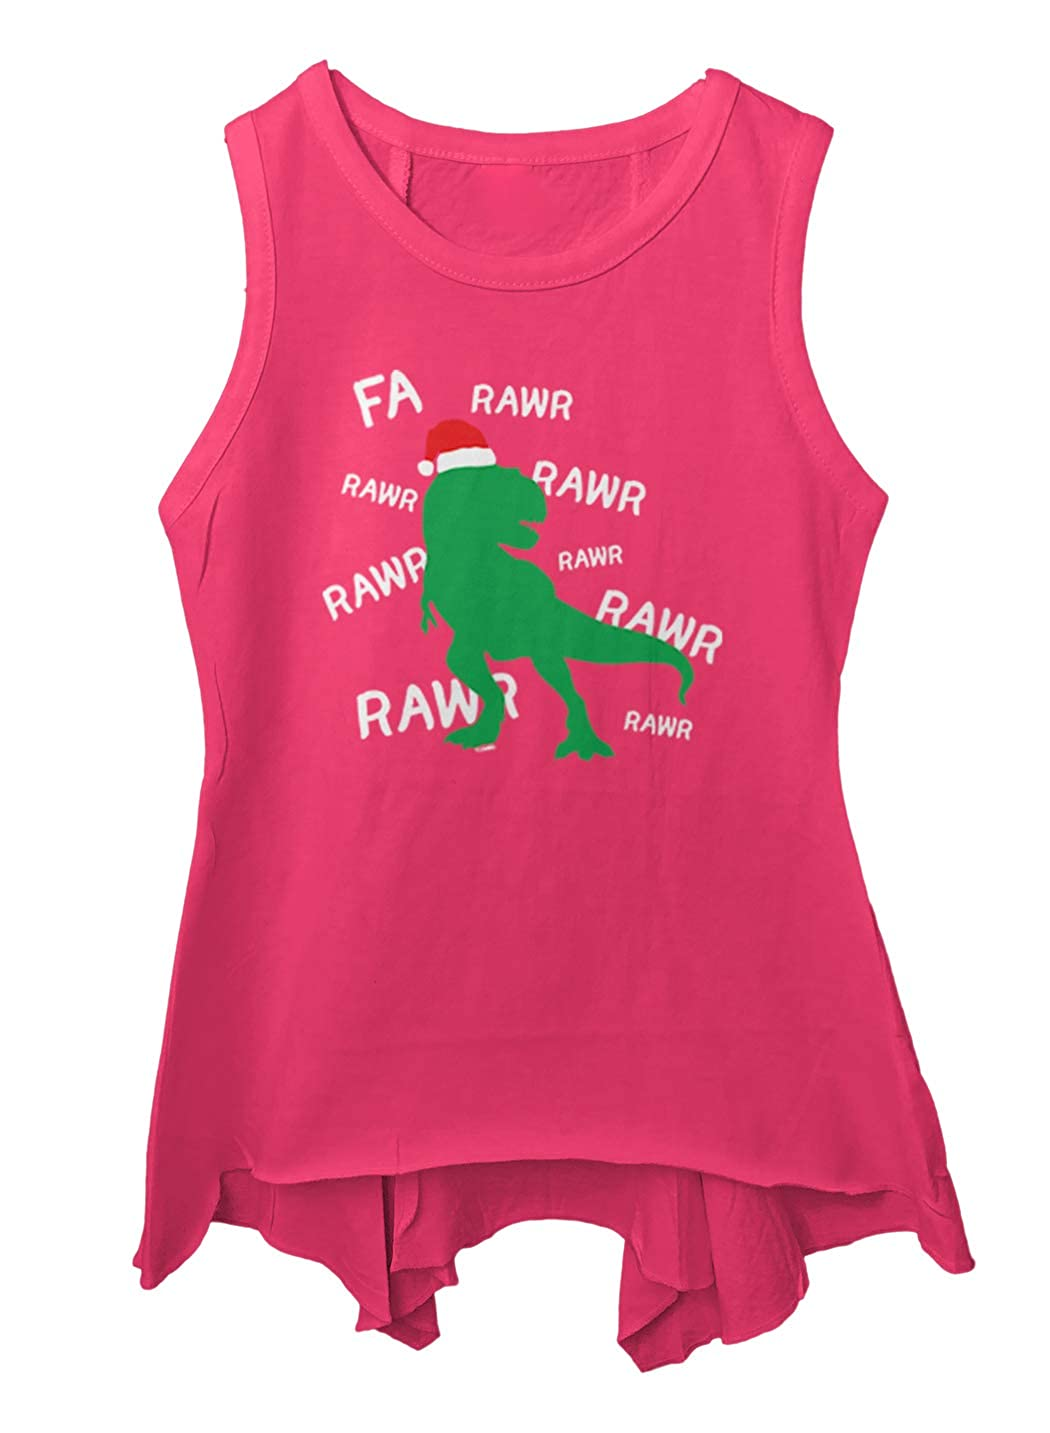 FA Rawr Dinosaur T Rex Holiday Song Toddler//Youth Sleeveless Backswing